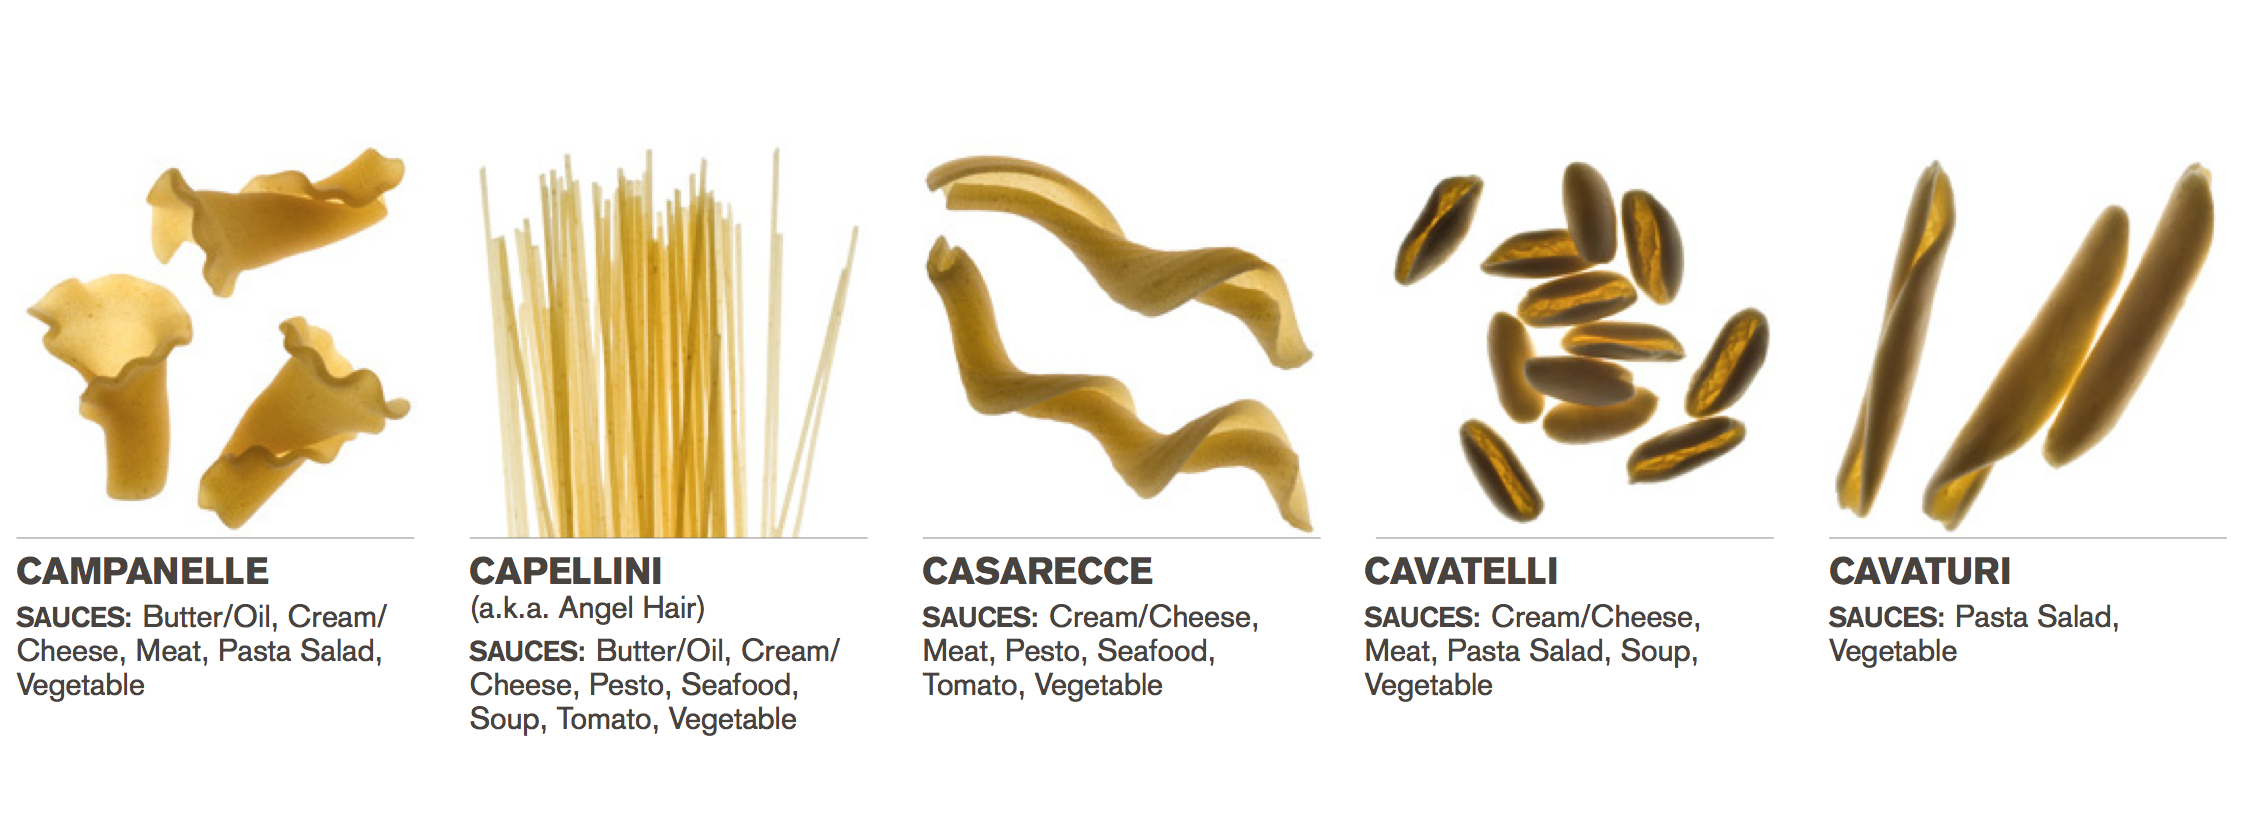 A republic of pasta?